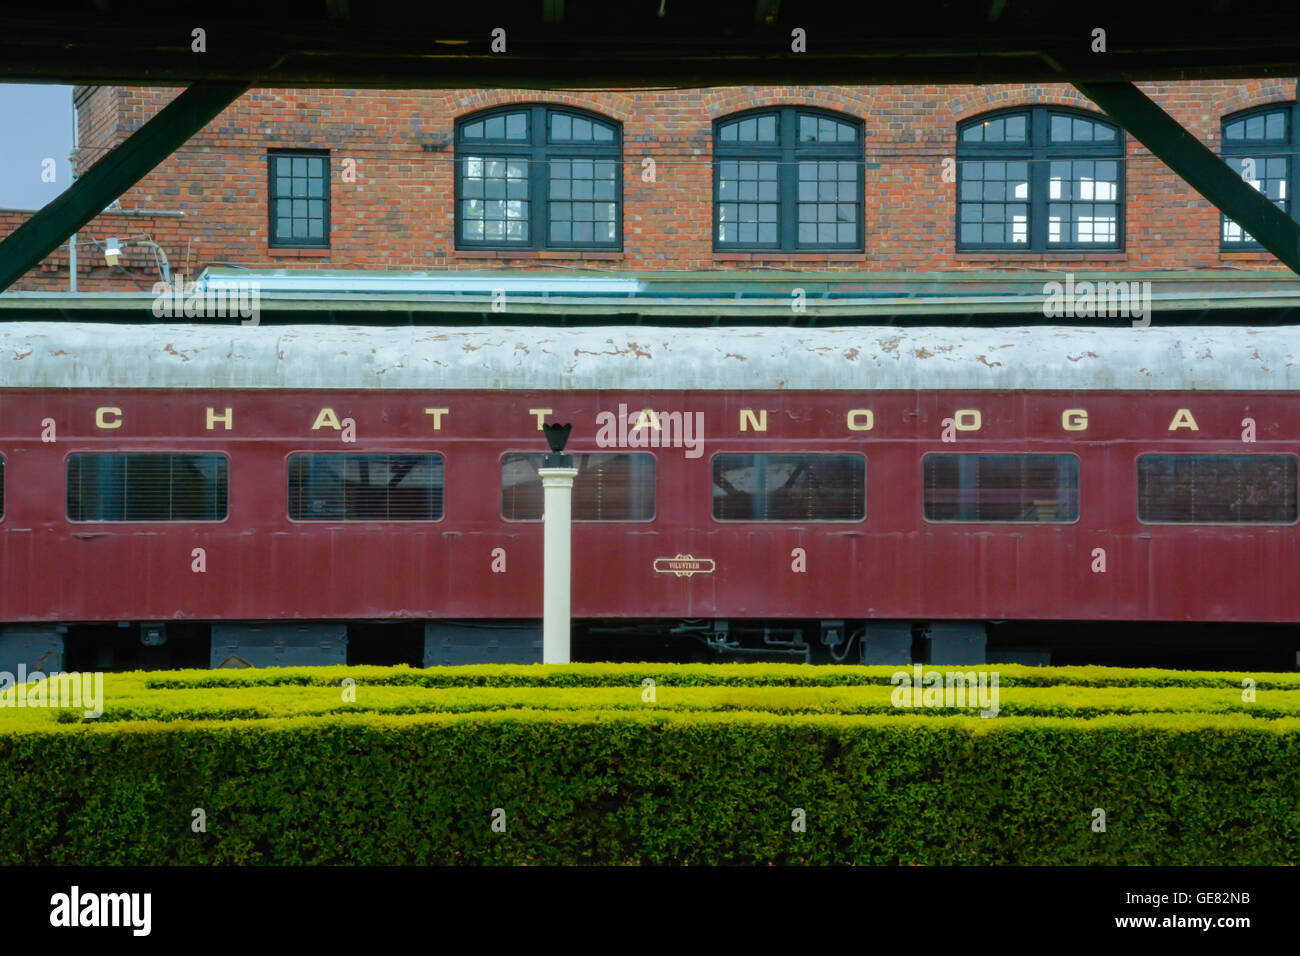 Chattanooga Choo Choo train Hotel TN complex old car mode transportation vintage attraction historical concept vacant - Stock Image